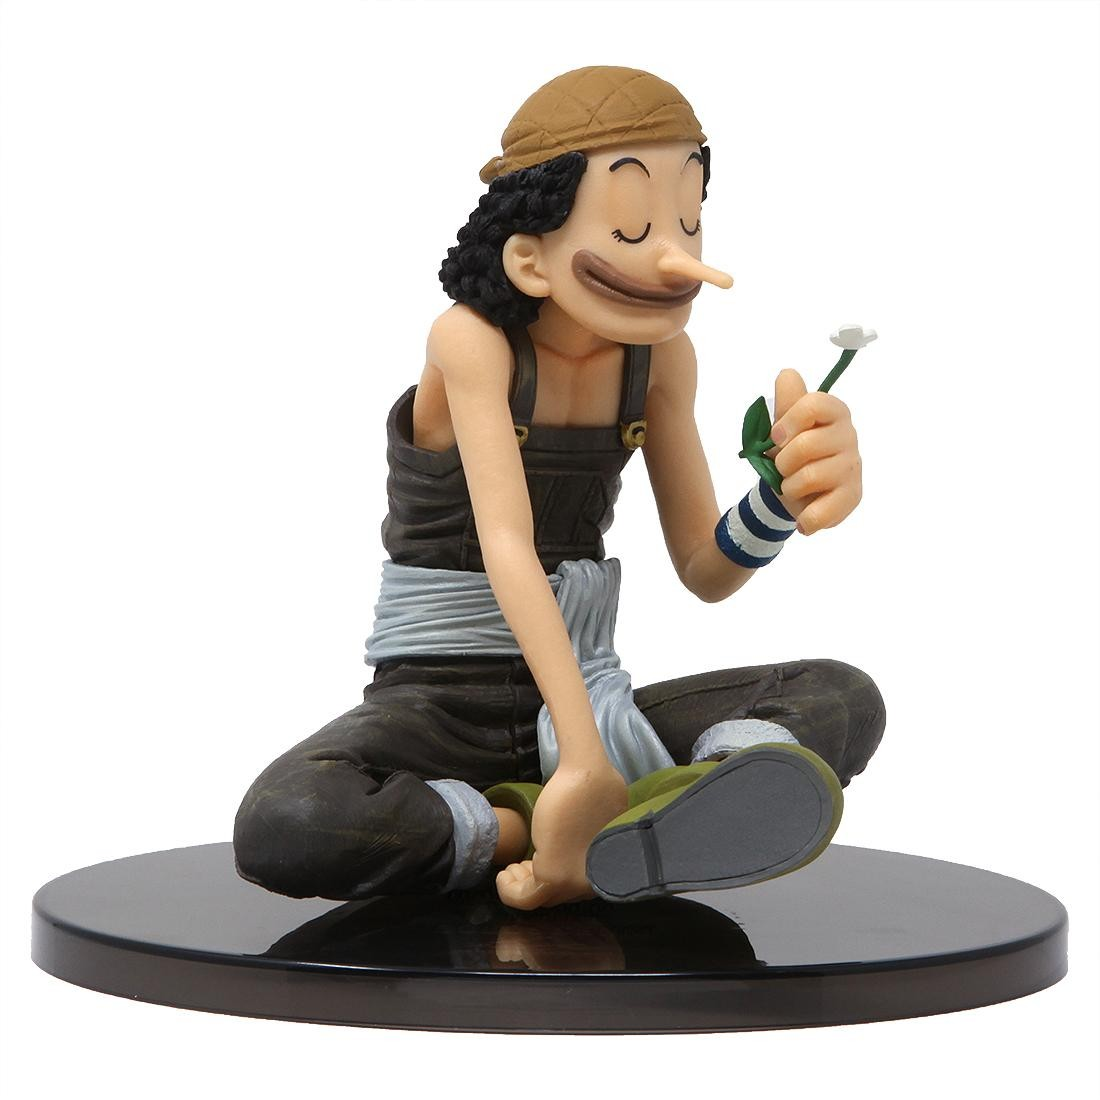 Banpresto One Piece Banpresto World Figure Colosseum 2 Vol.1 Usopp (tan)